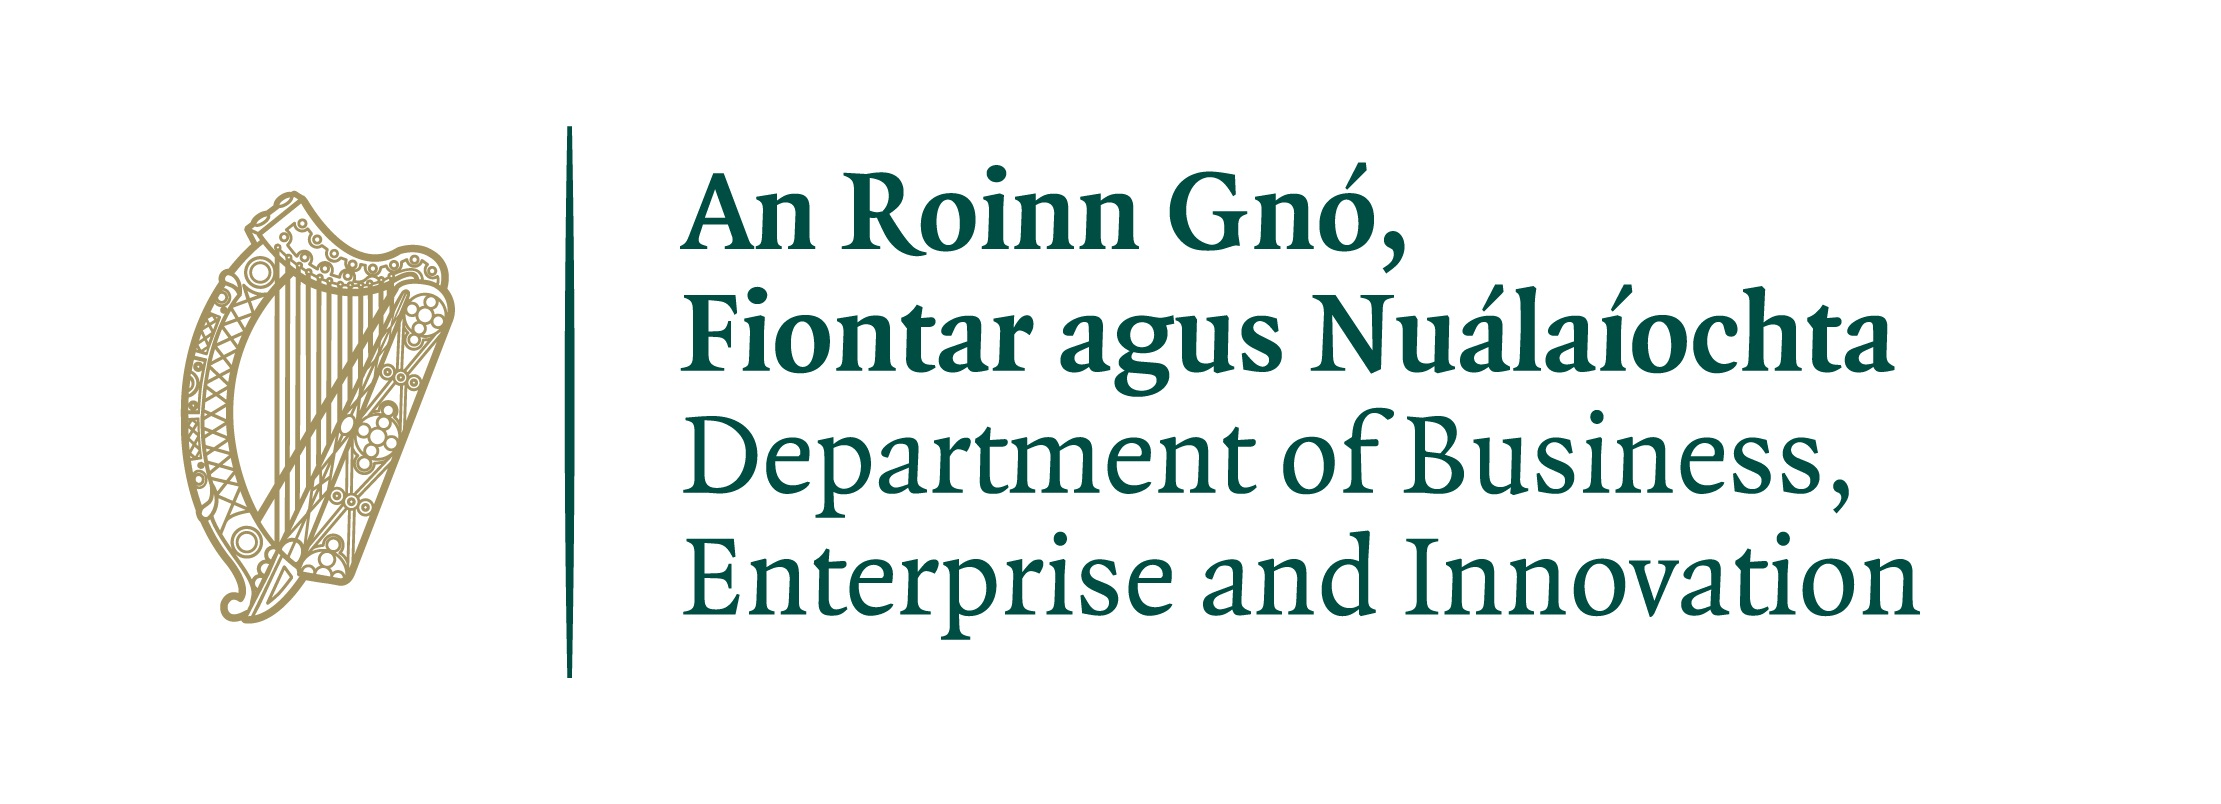 application of business innovation to public policy